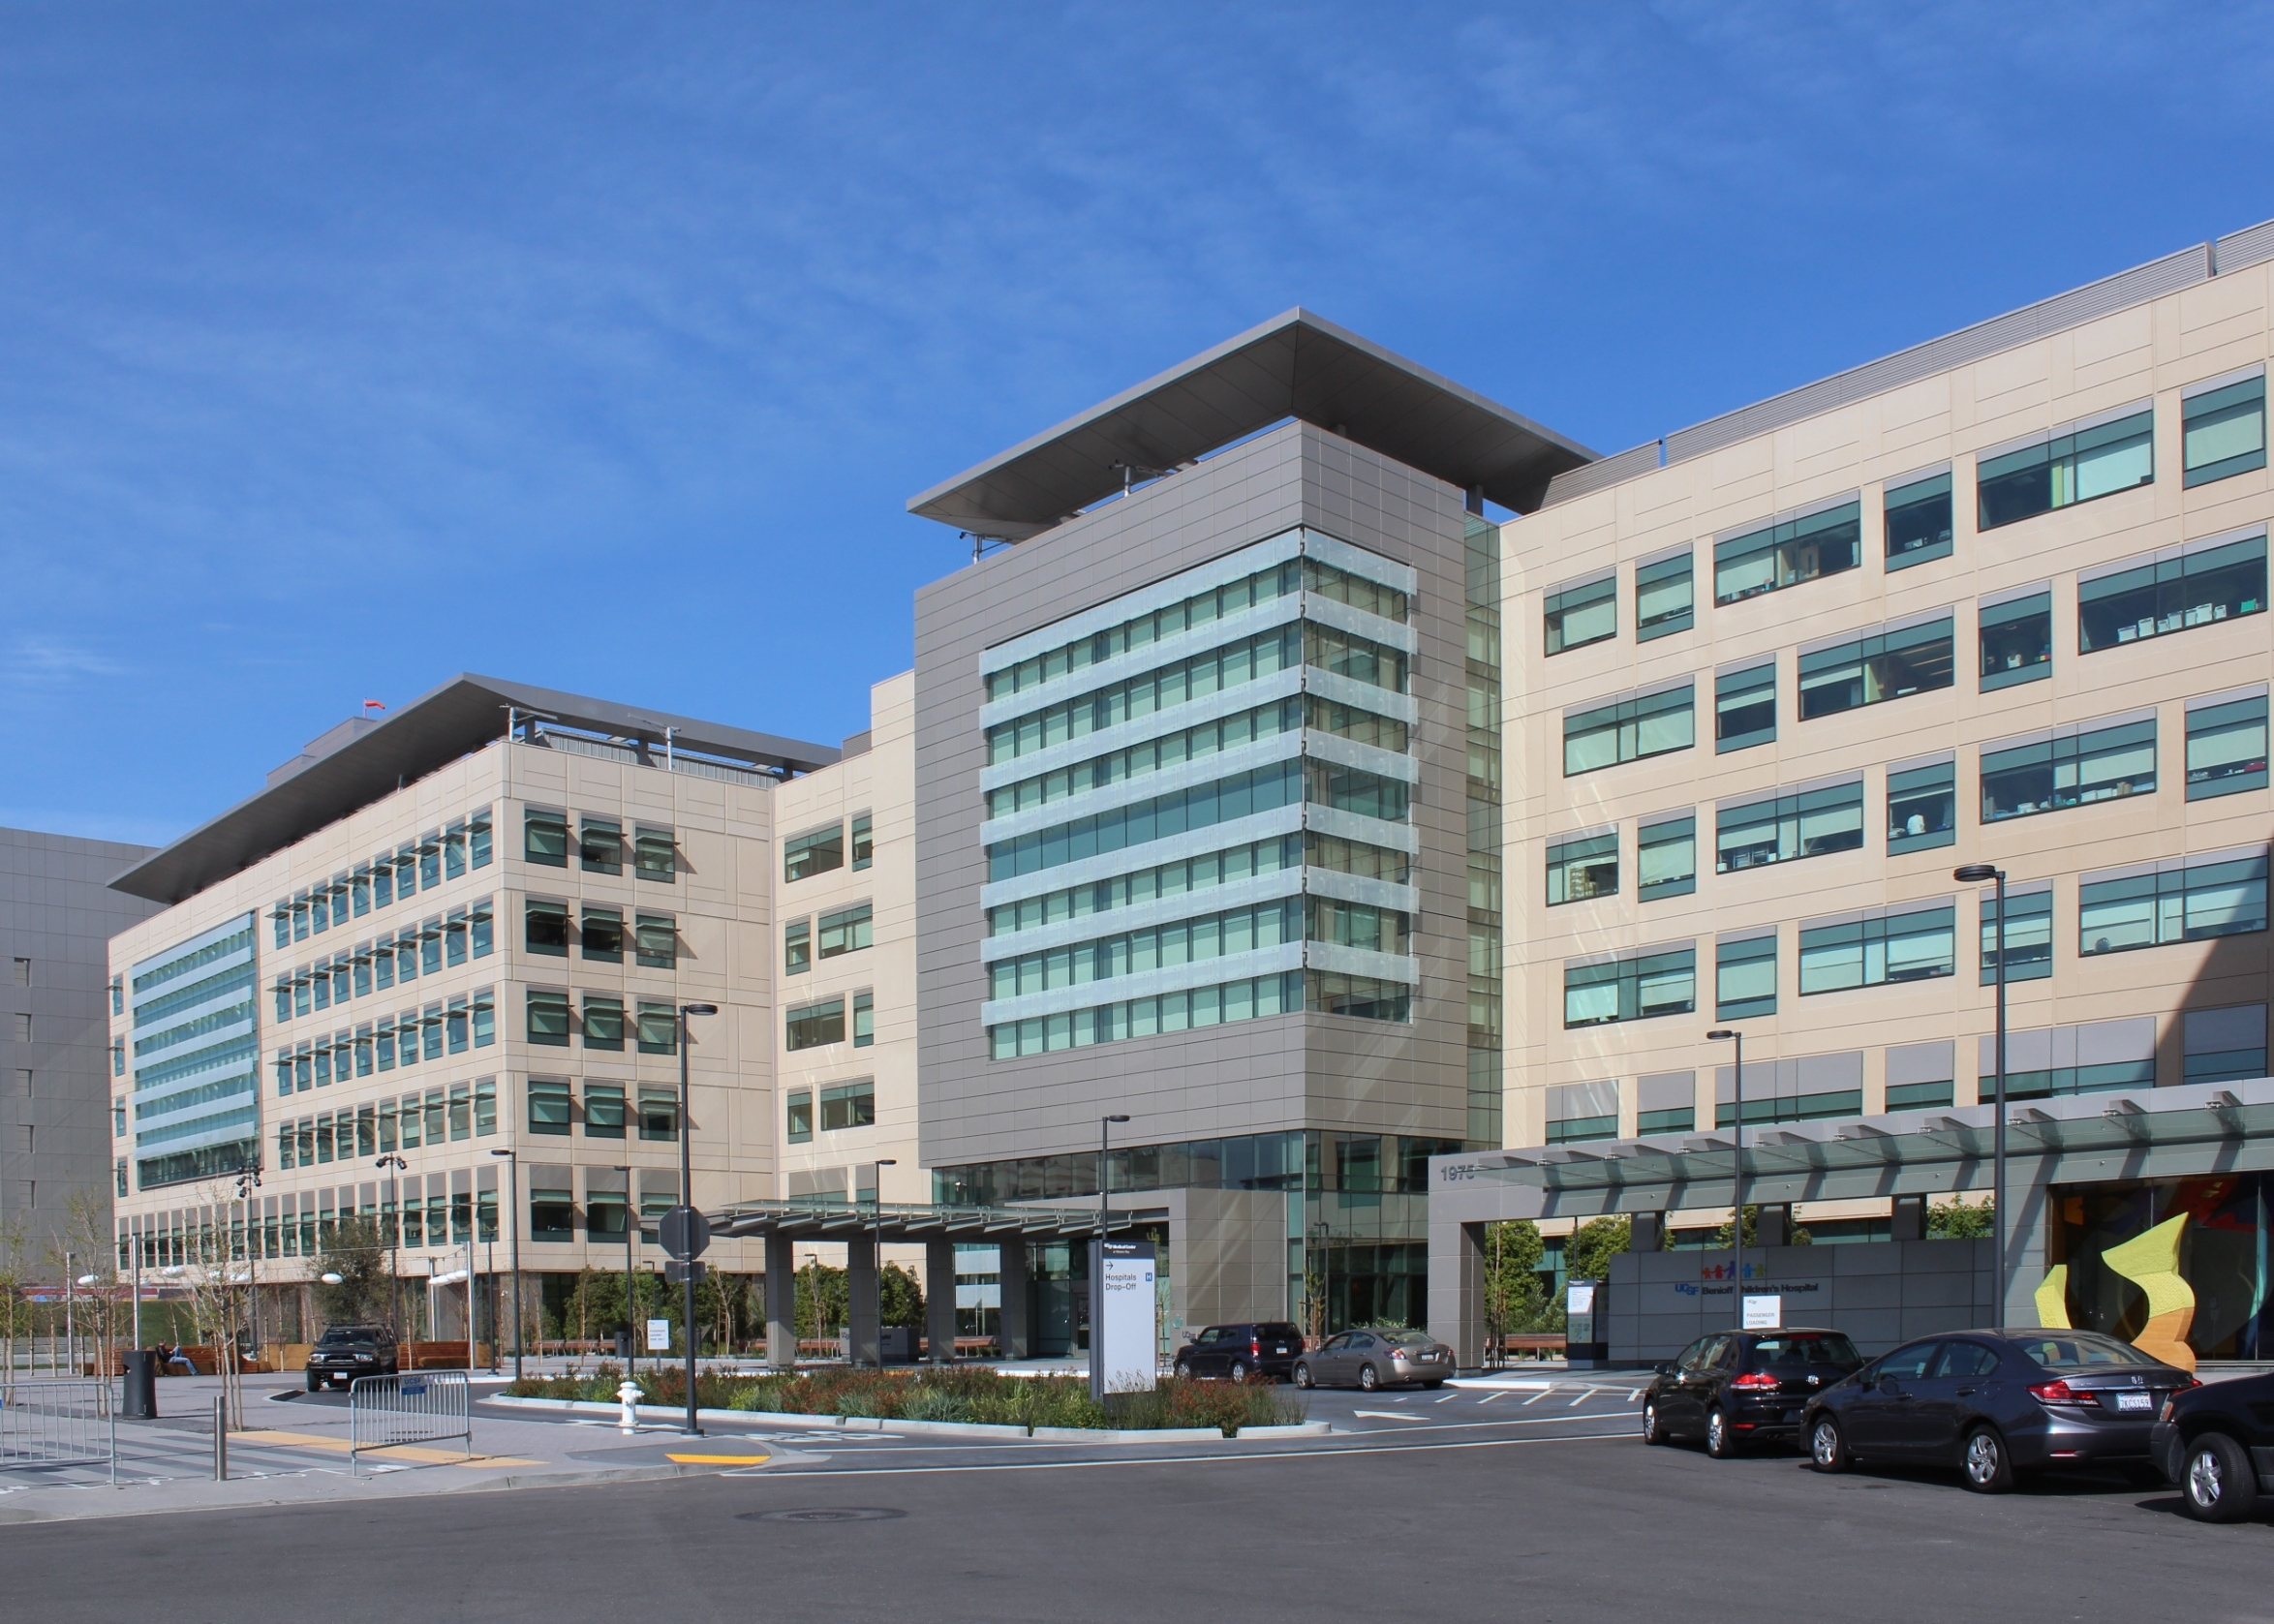 UCSF Medical Center at Mission Bay